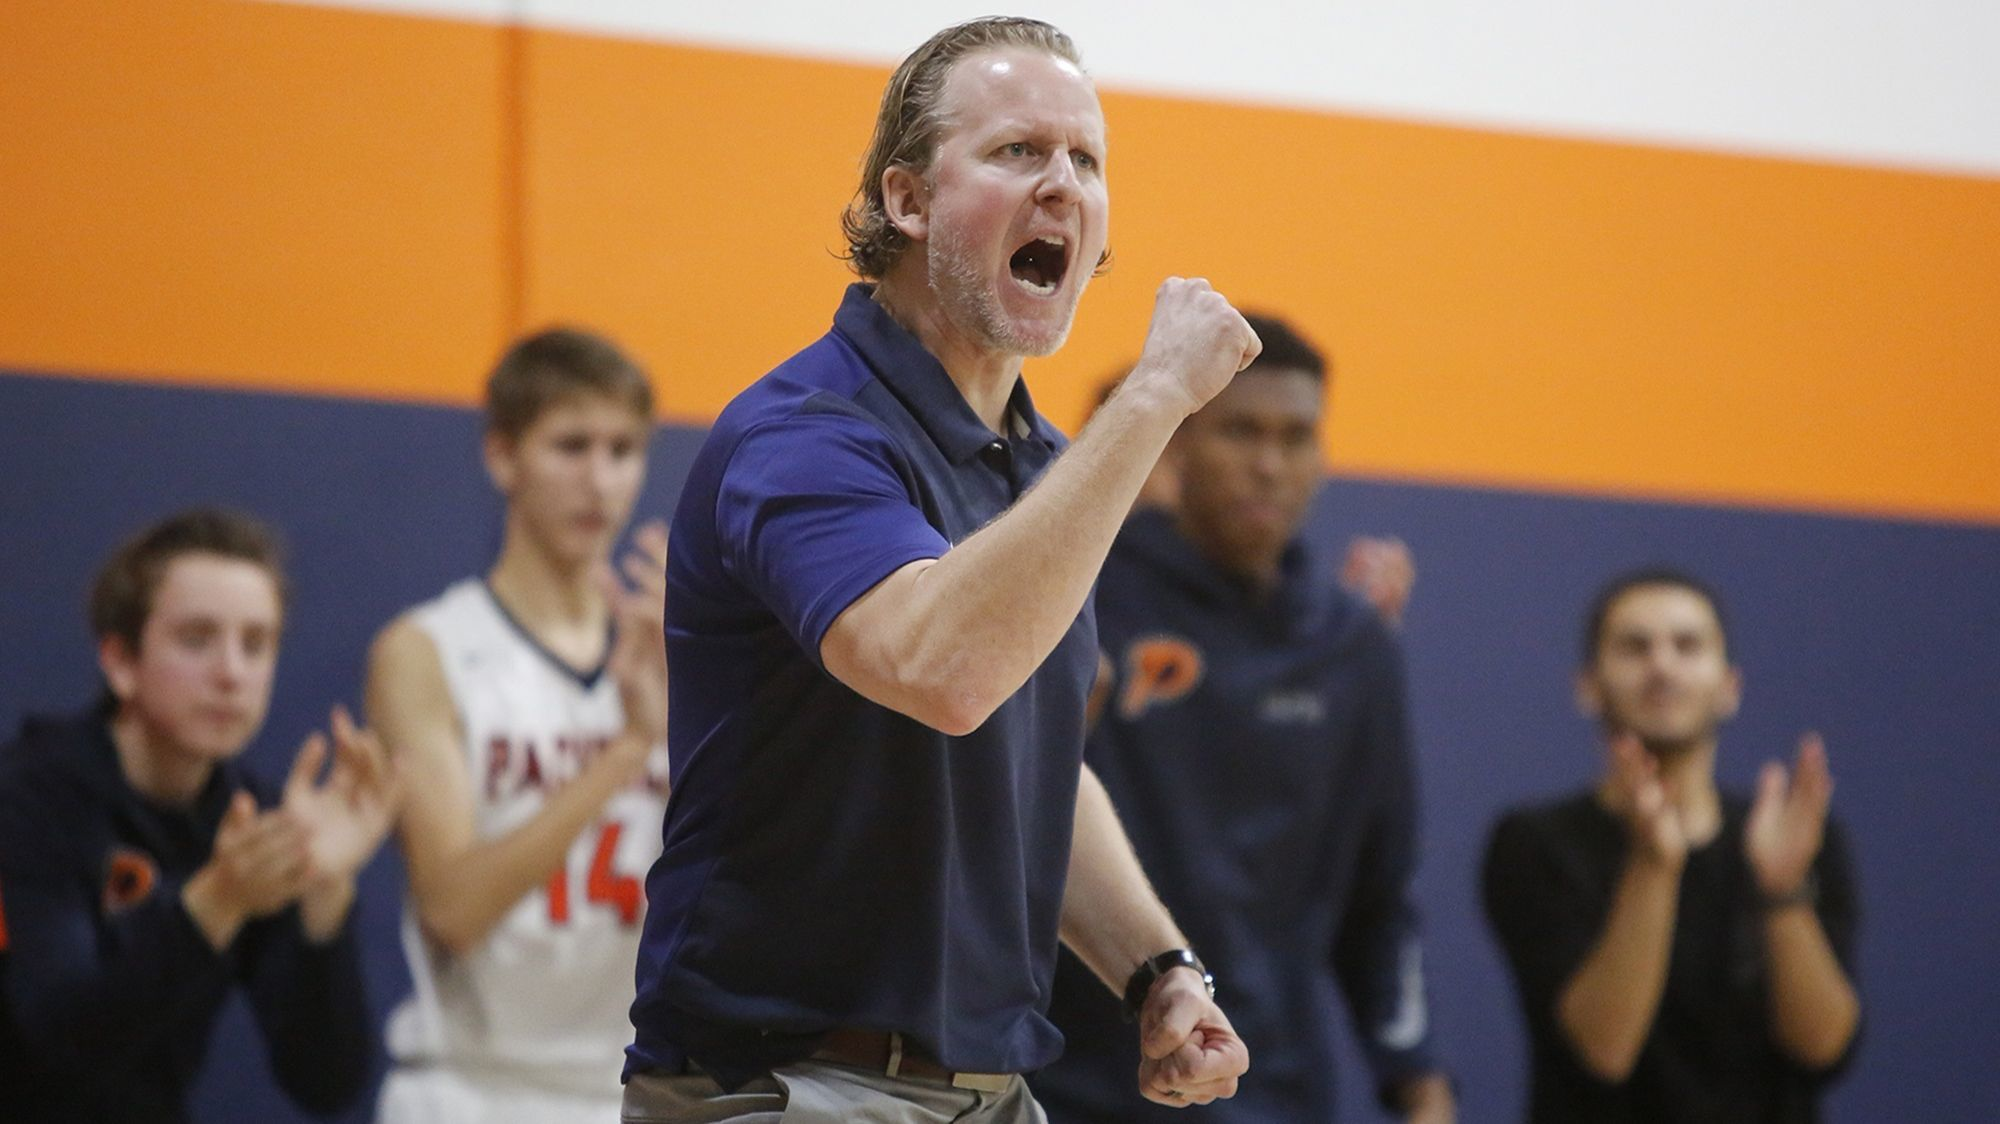 Pacifica Christian Orange County boys' basketball coach Jeffrey Berokoff